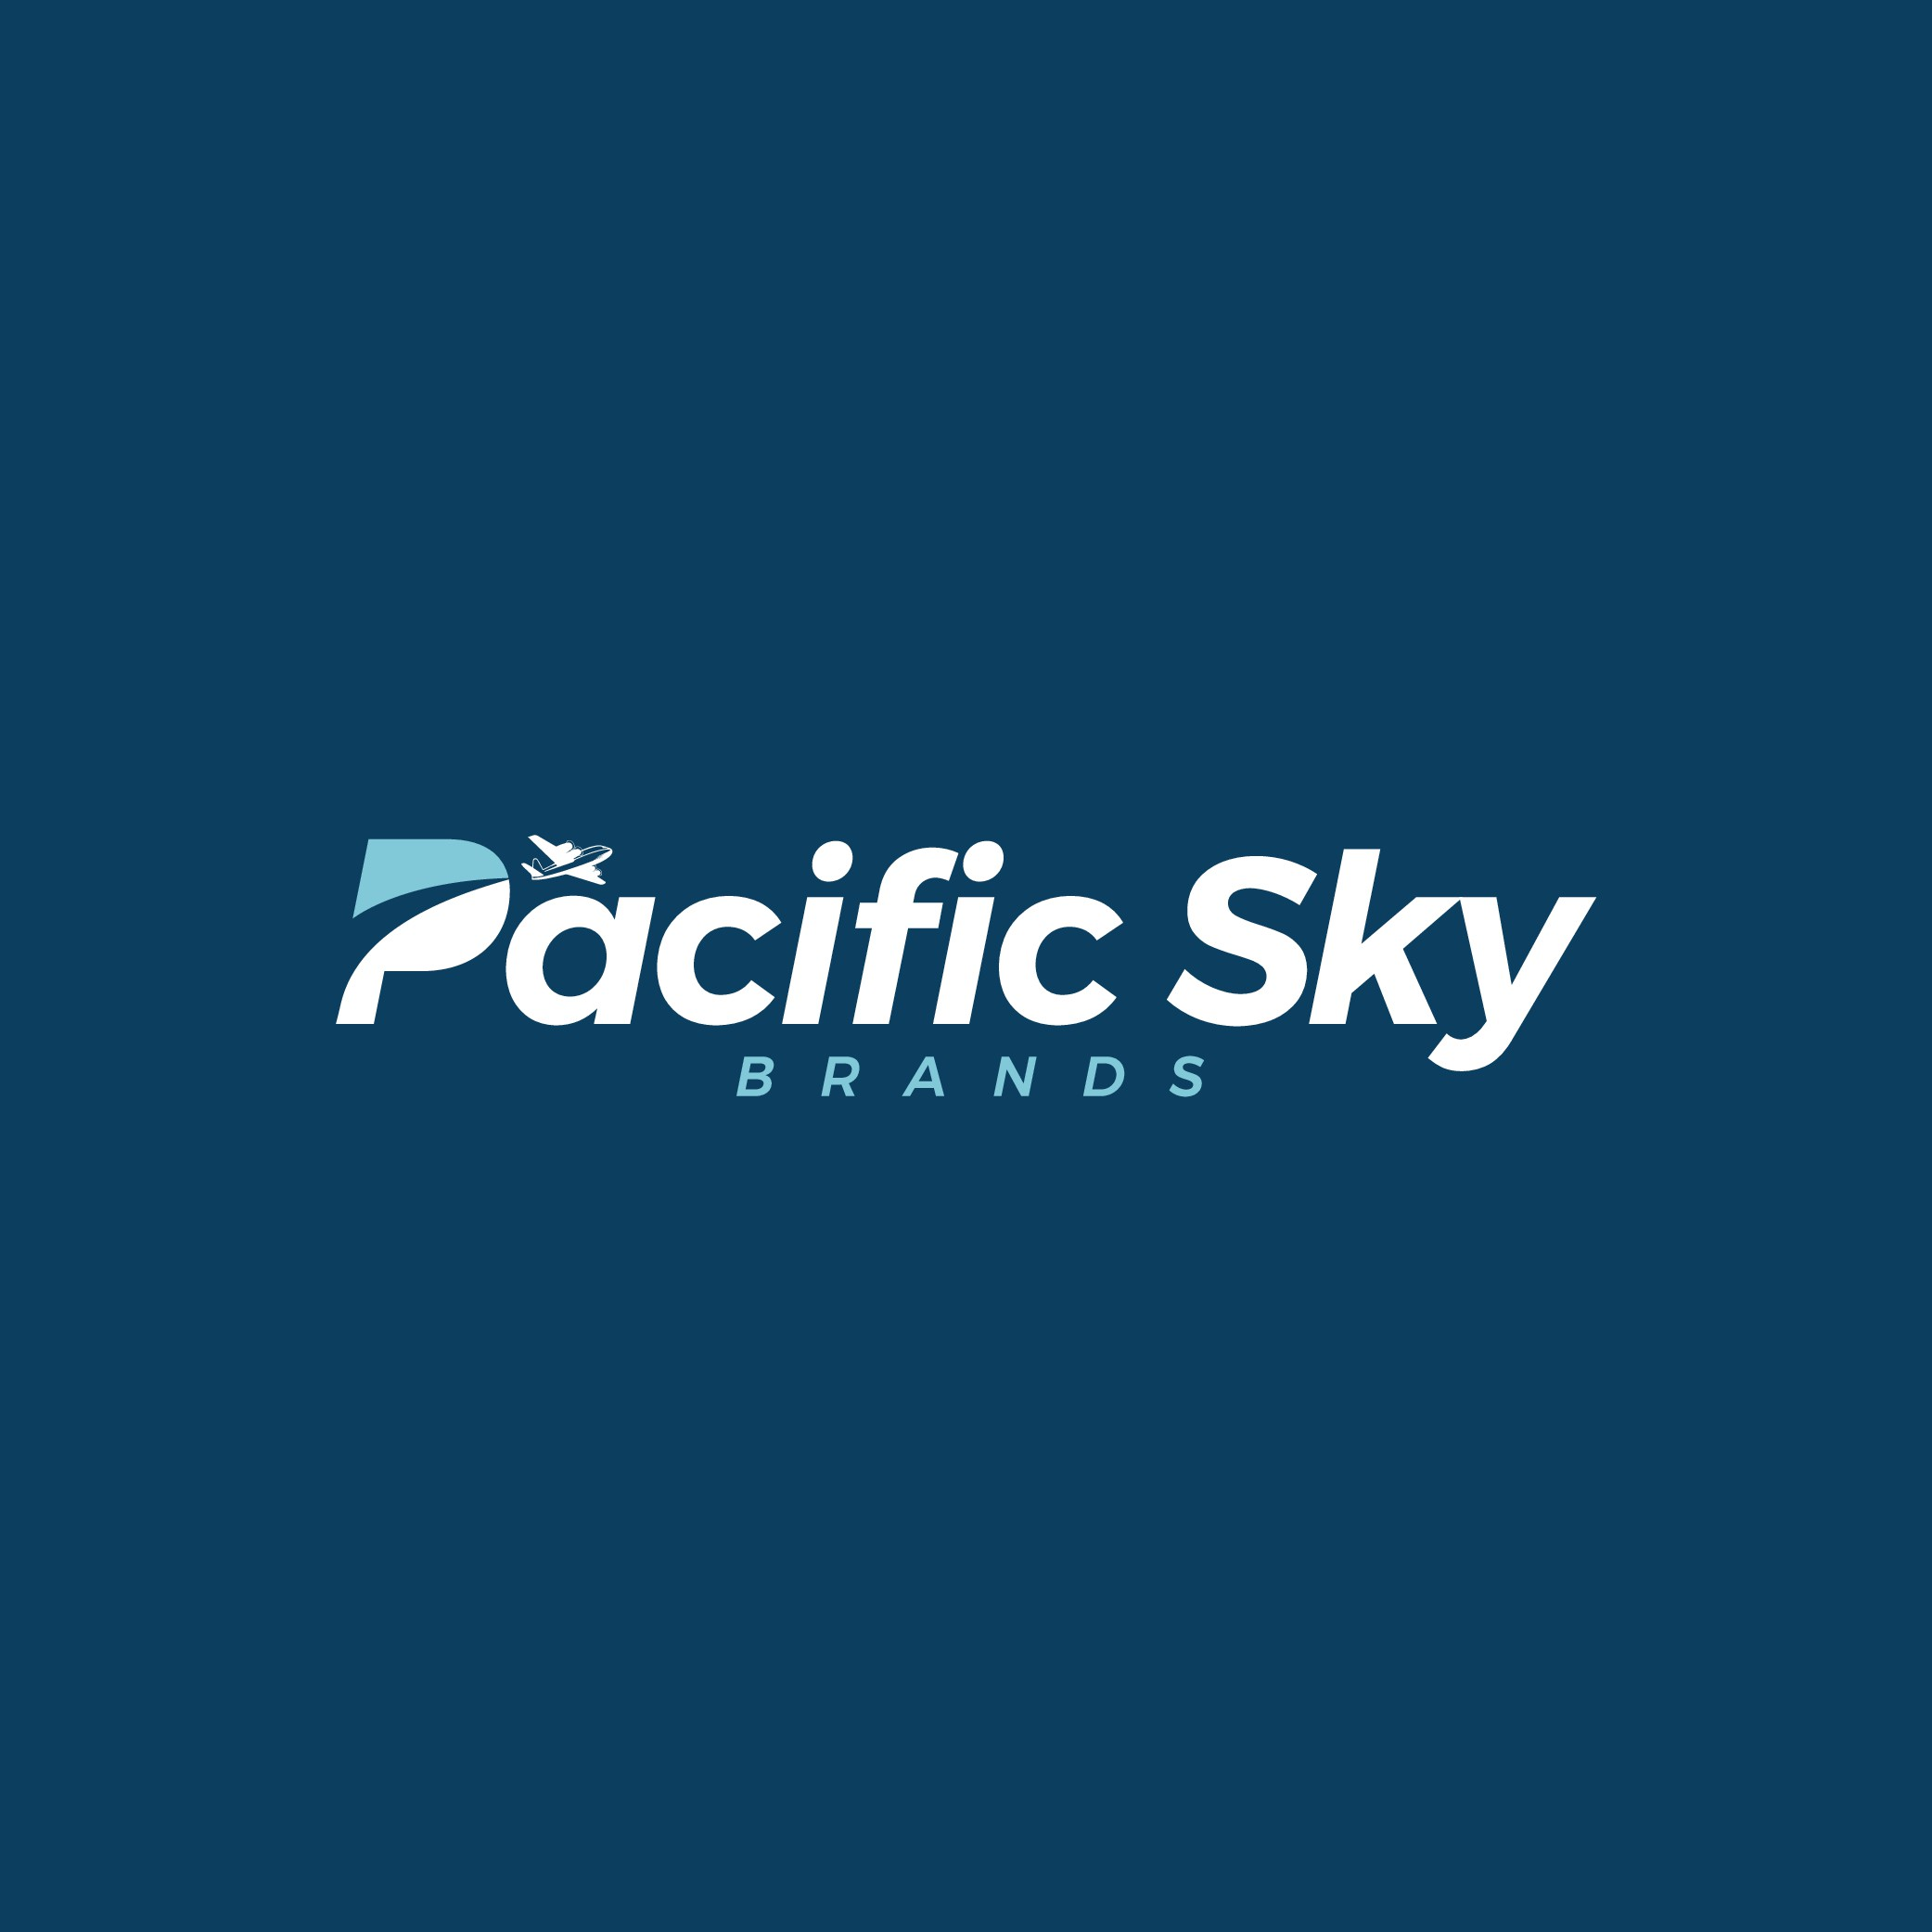 Clean, simple logo for Pacific Sky Brands